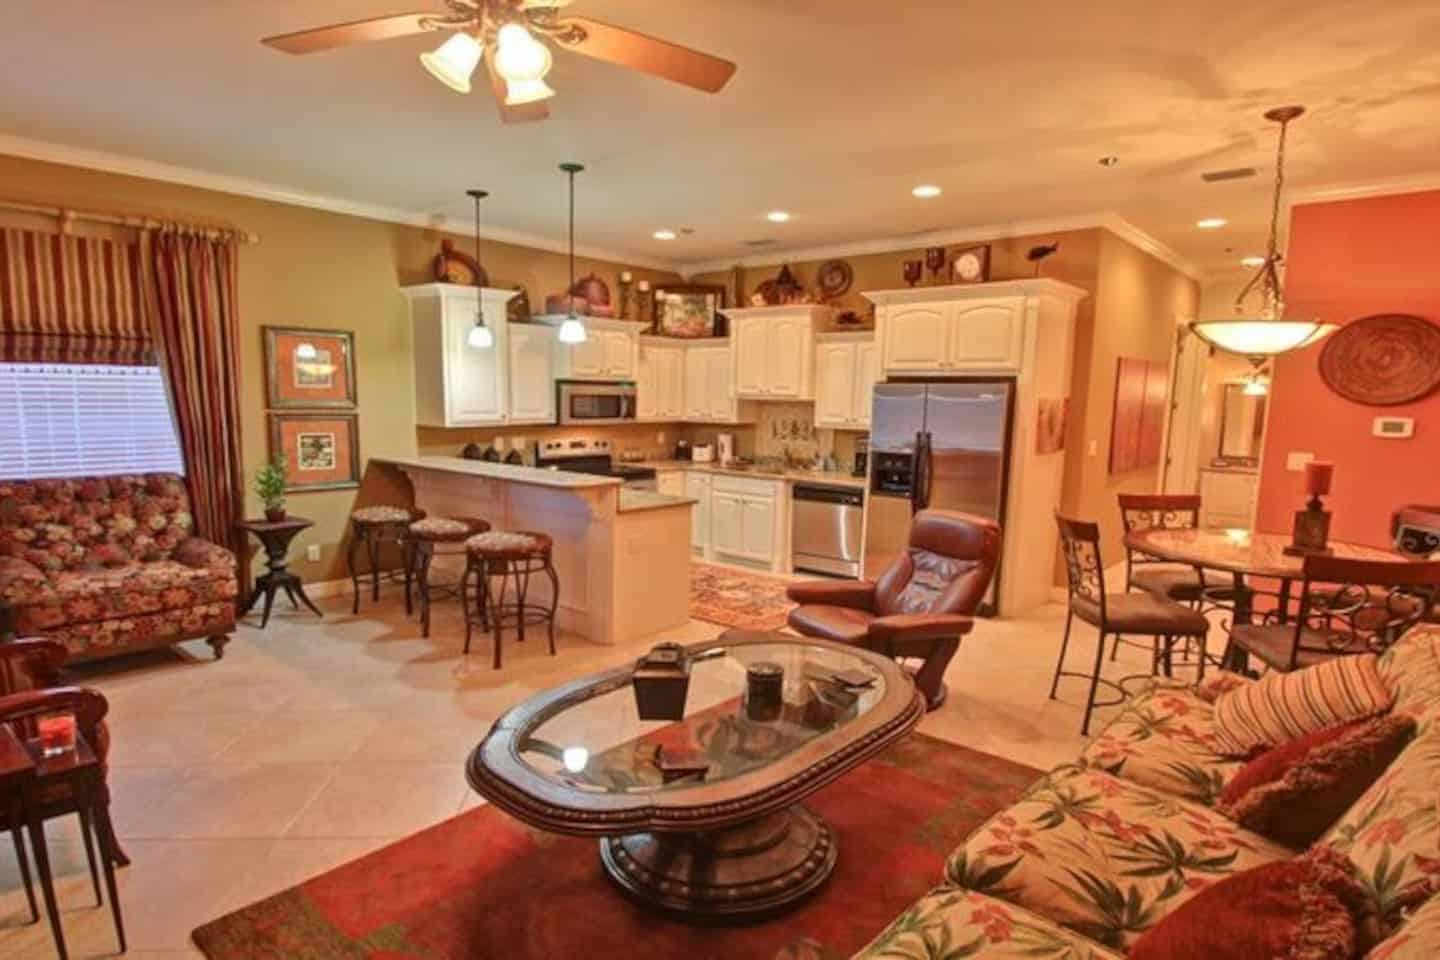 Image of Airbnb rental in South Padre, Texas